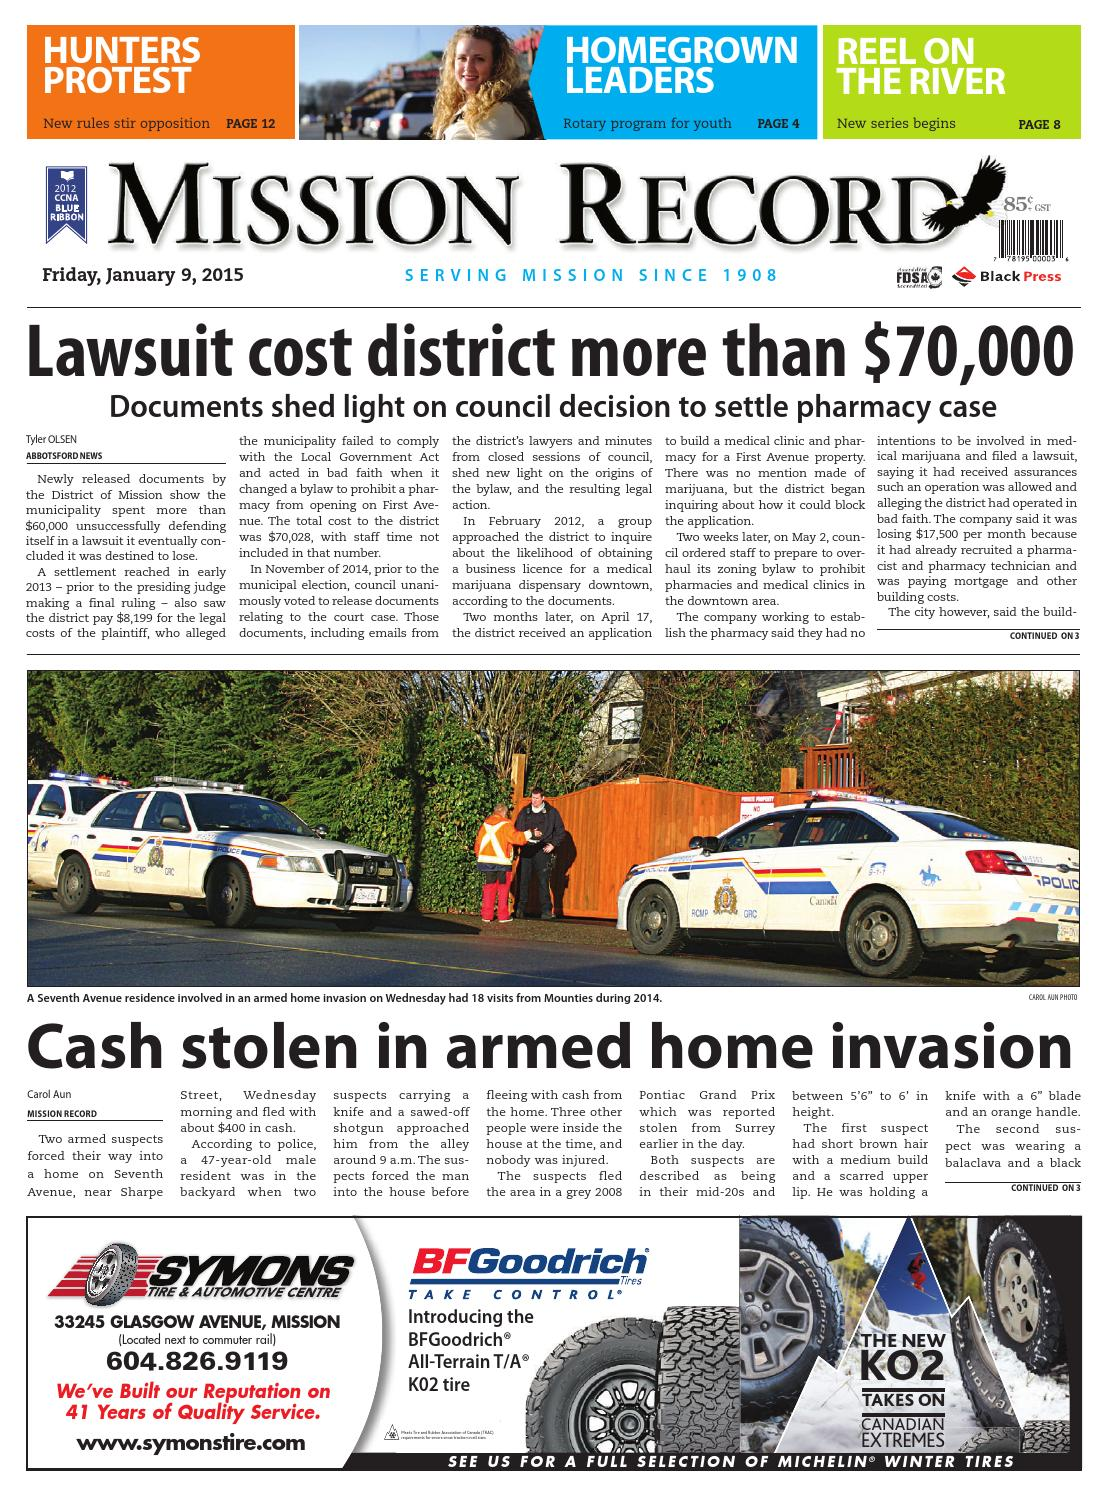 Mission City Record January 09 2015 By Black Press Issuu Remove Wiring Harness Mazda Sped3